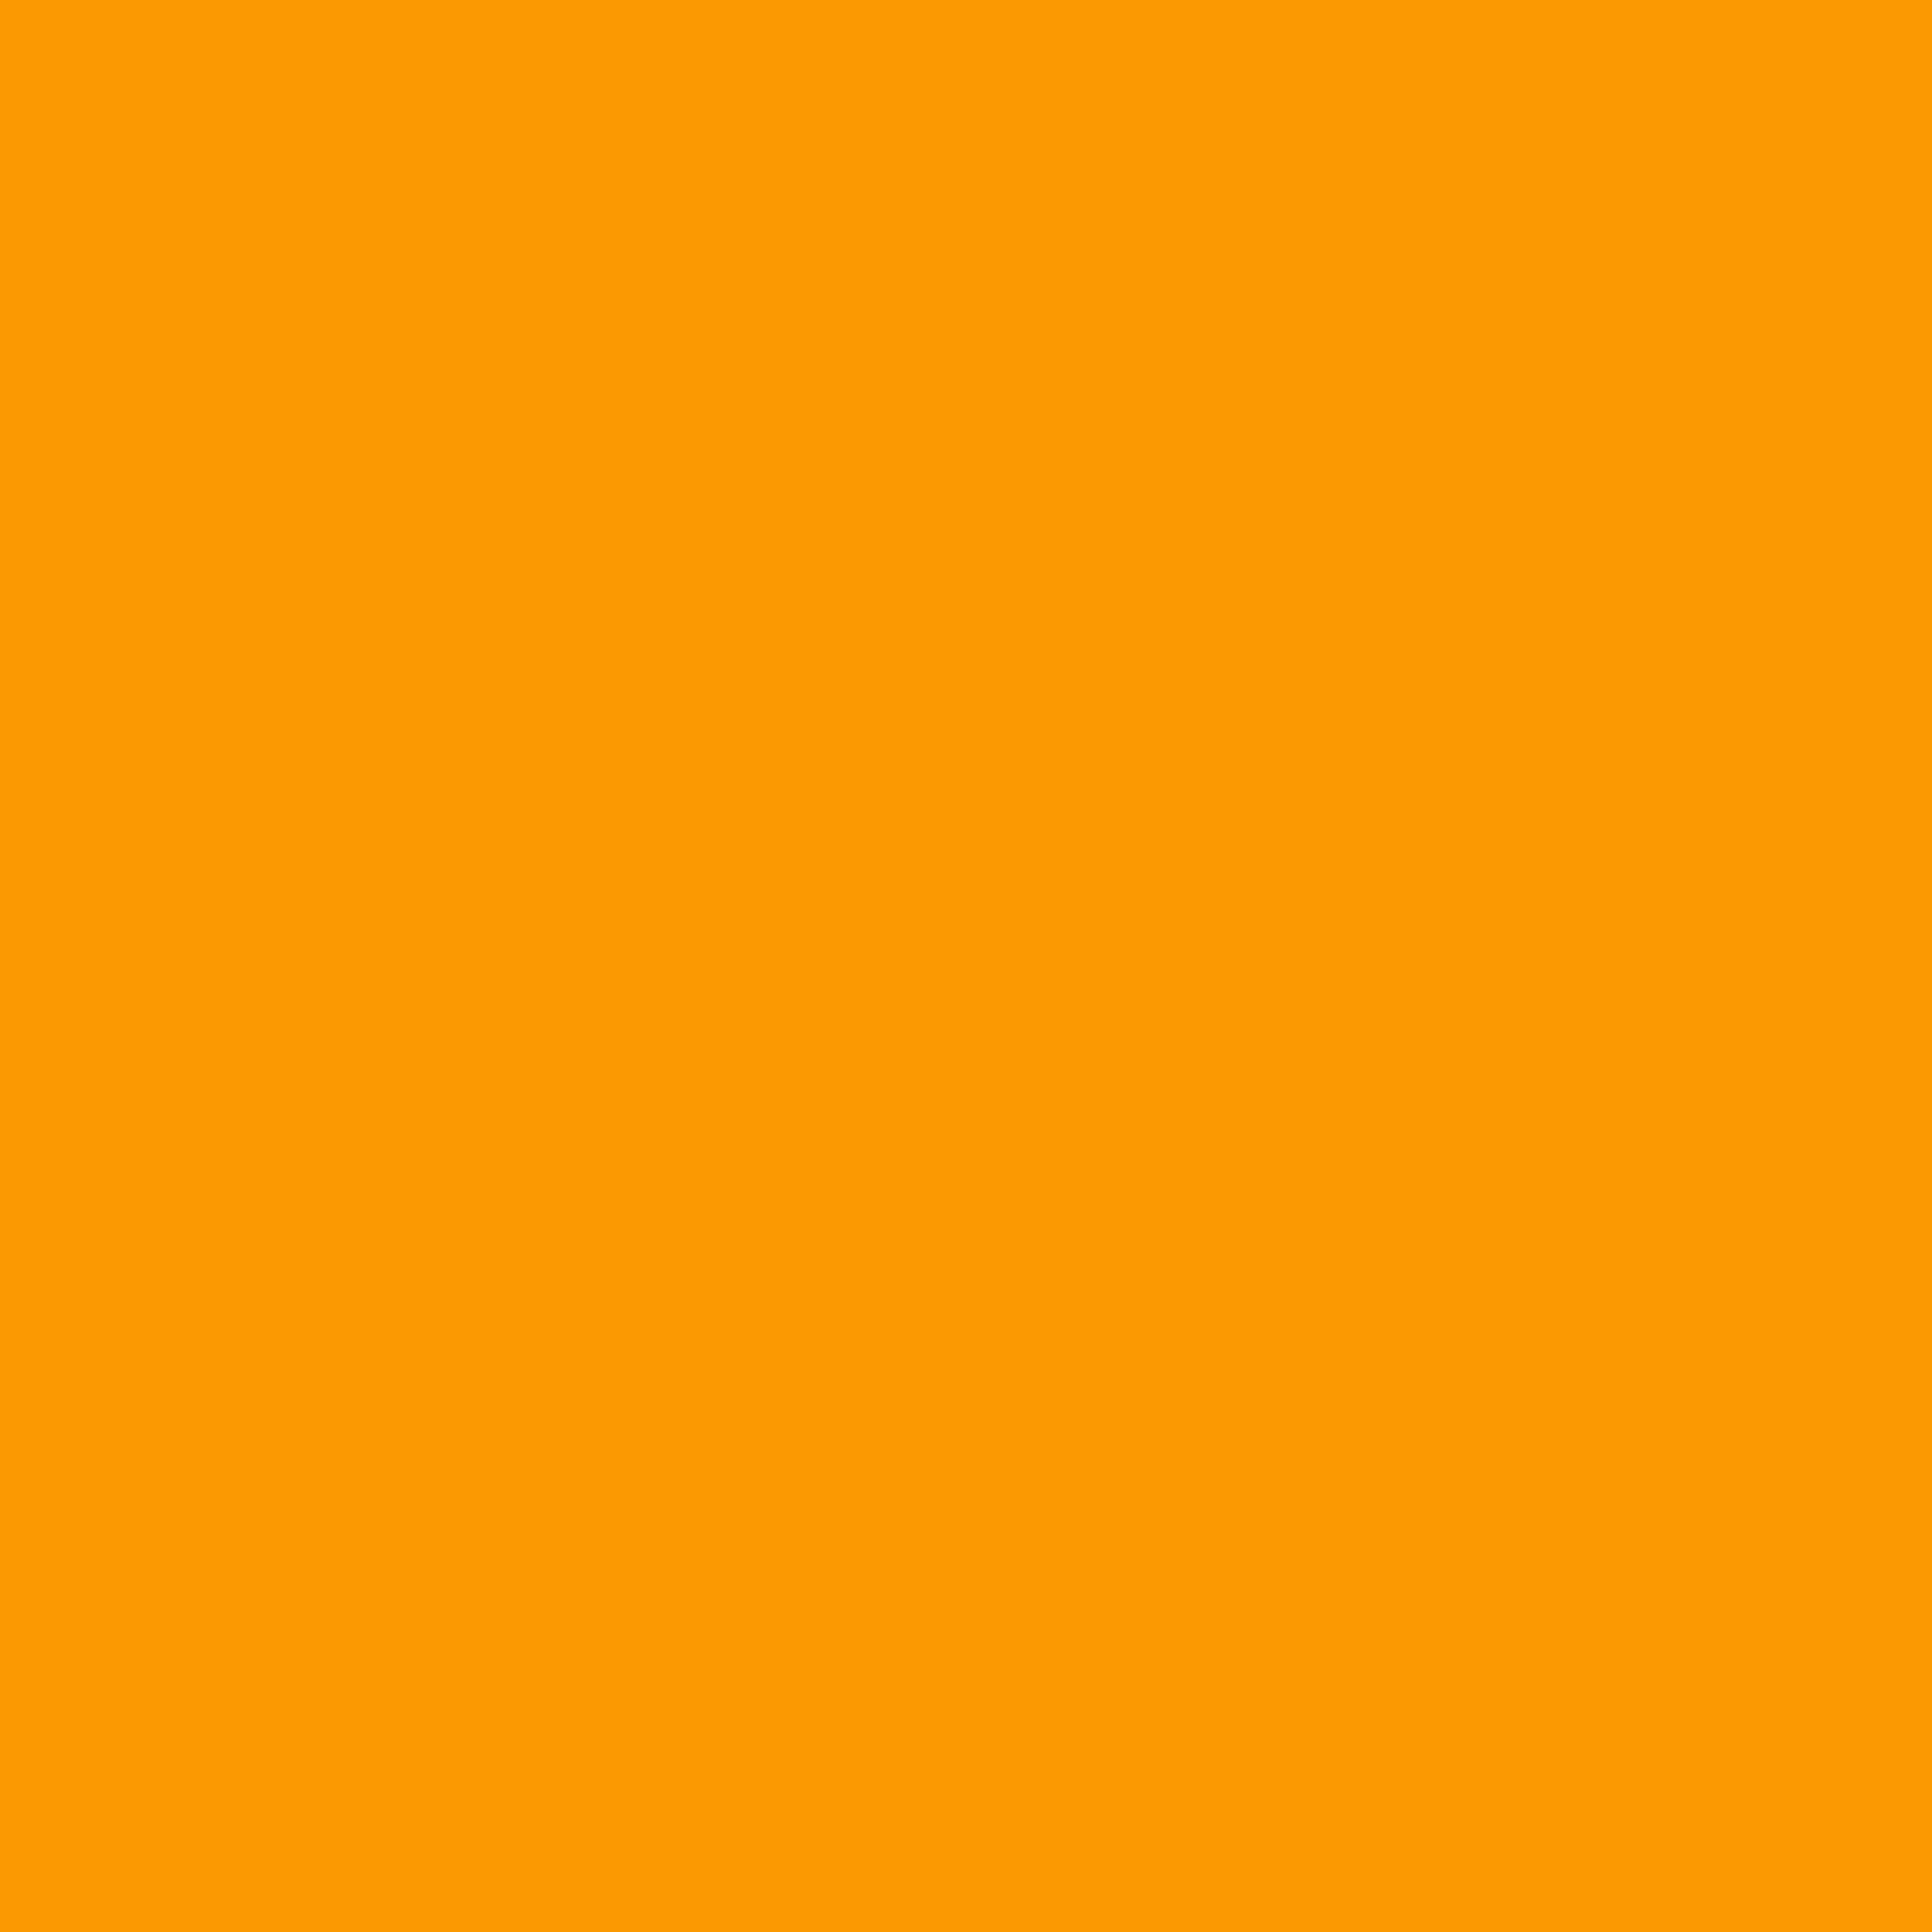 3600x3600 Orange RYB Solid Color Background